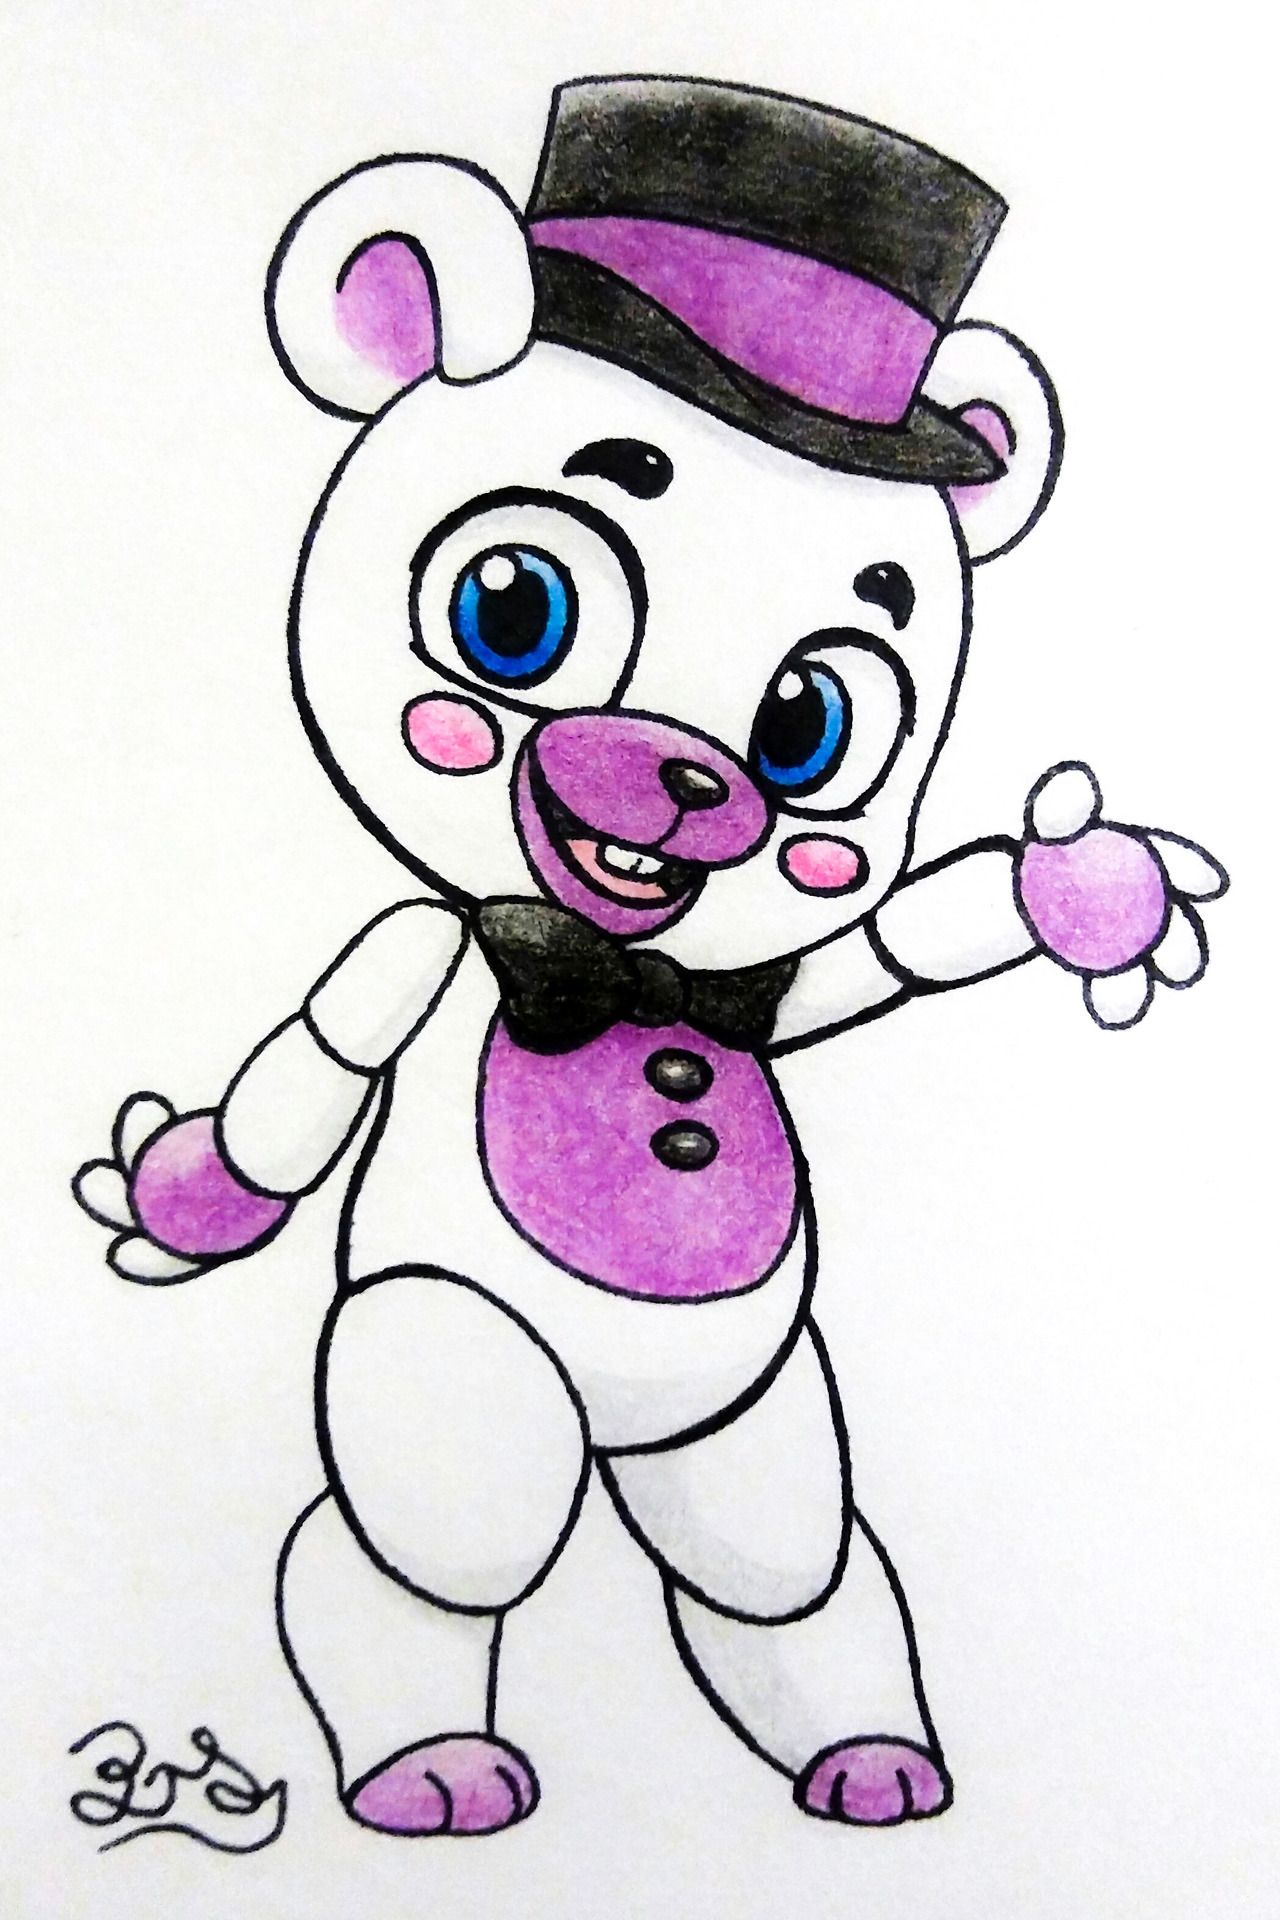 Five Nights At Freddys Fnaf 6 Fnaf Fnaf Fan Art Fnaf Art Ffps